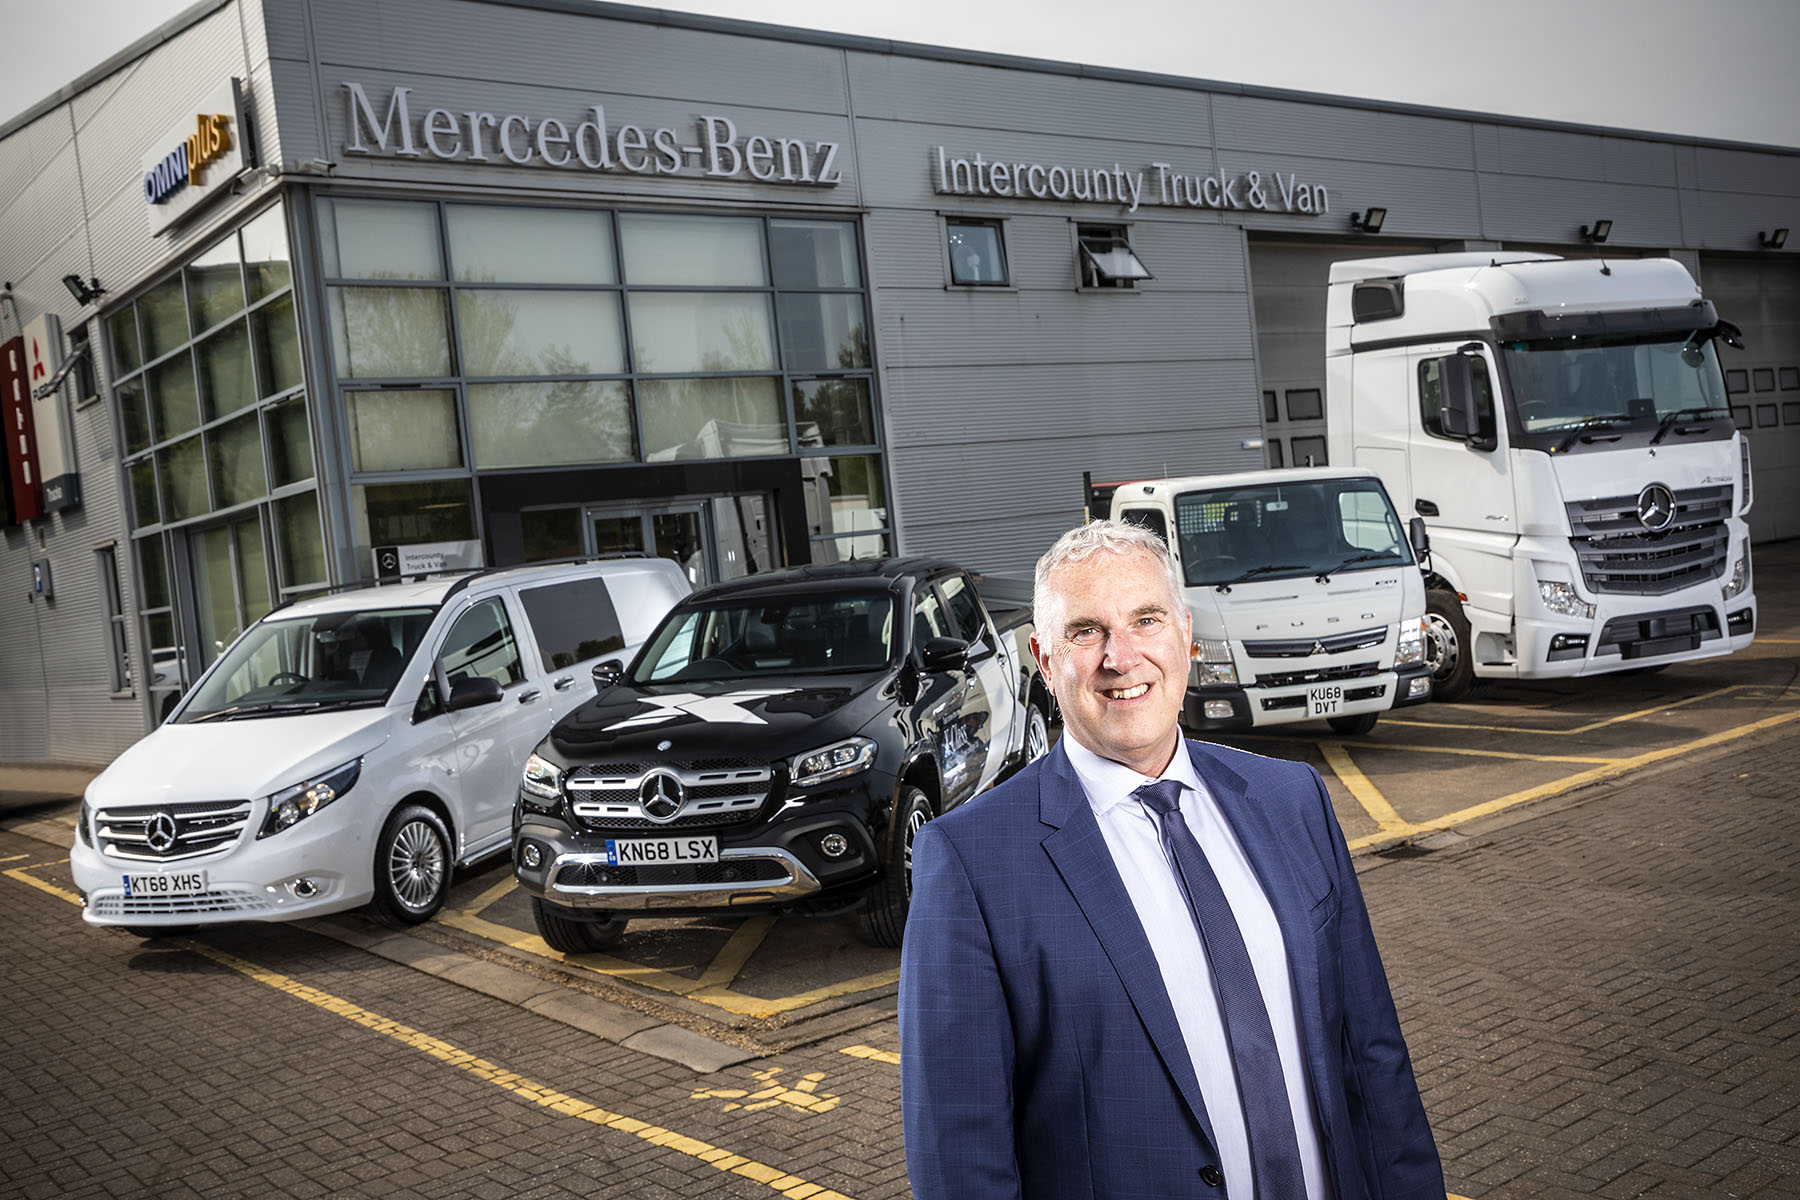 Andrew comes 'full circle' with new role at Mercedes-Benz Dealer Intercounty Truck & Van